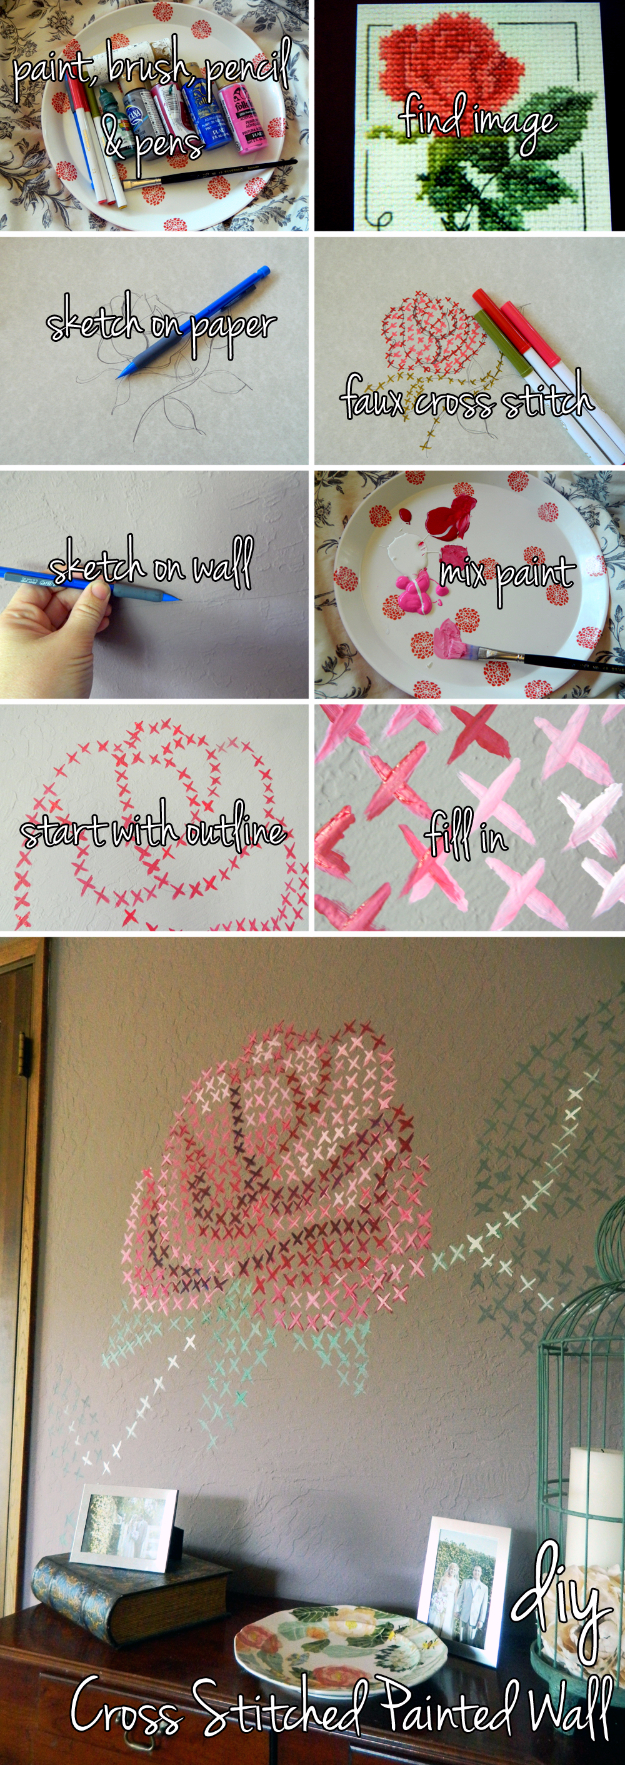 34 cool ways to paint walls diy projects for teens for Diy wall photo mural